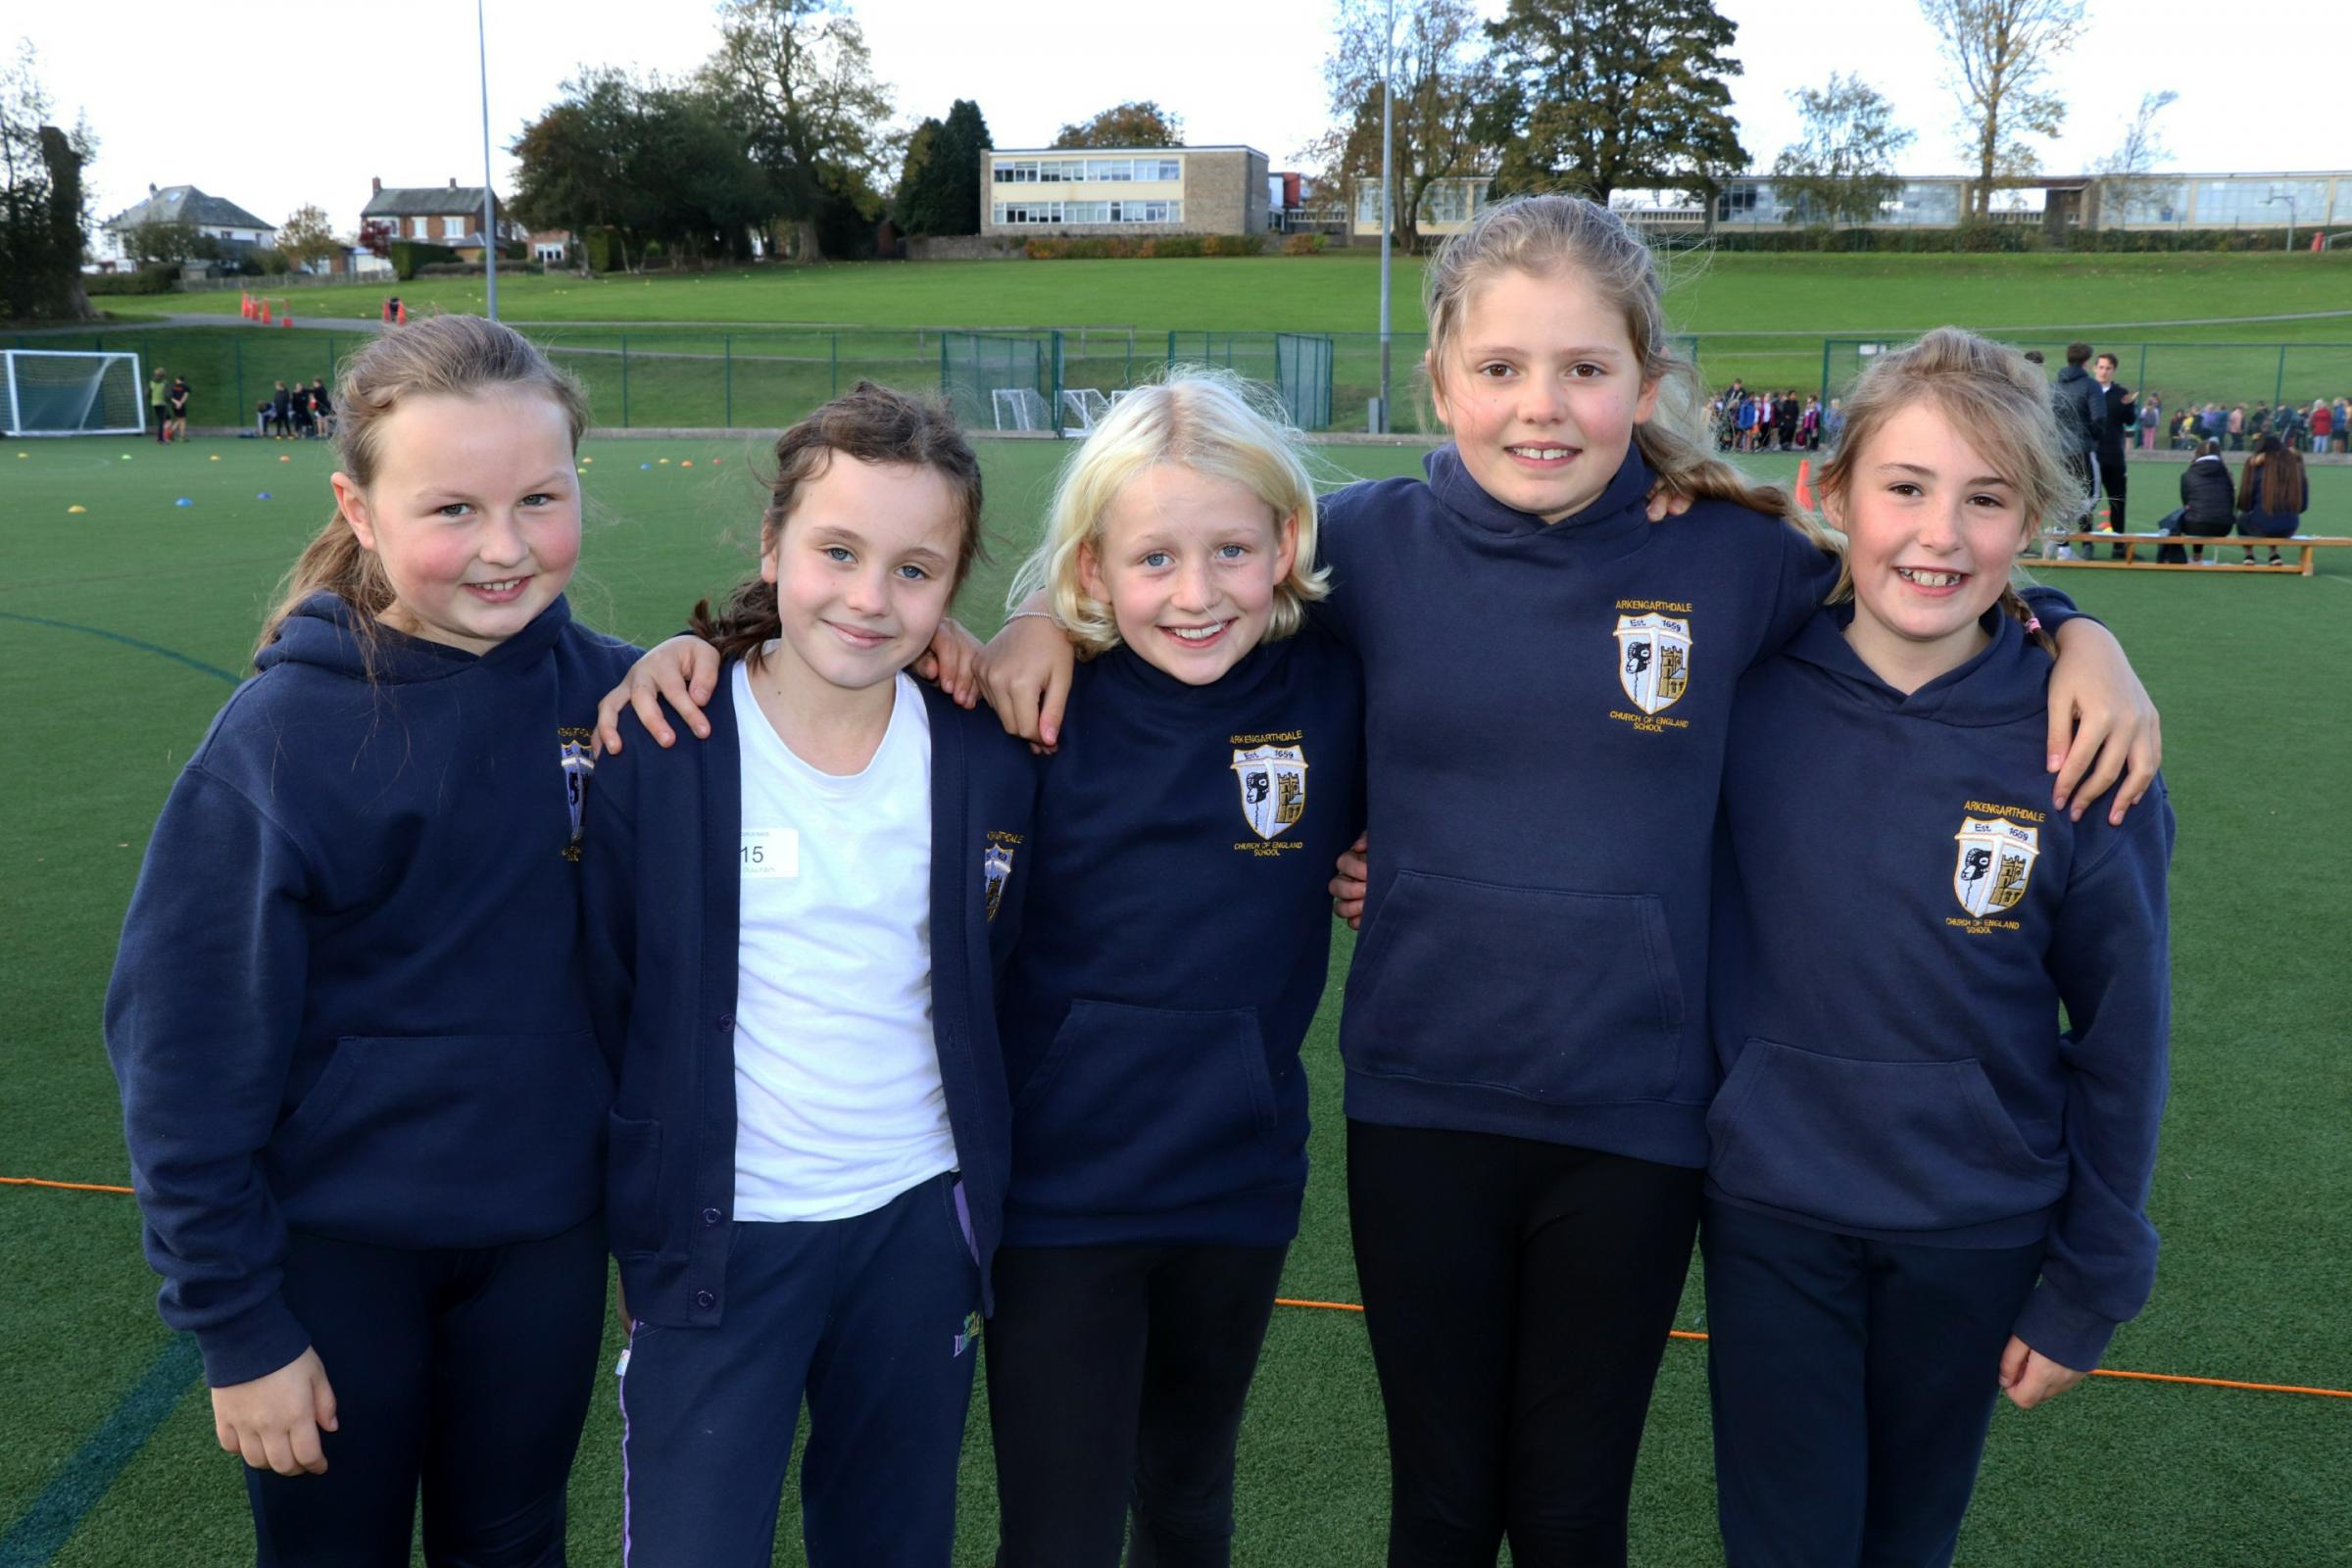 RUNNING: Five students from Arkengarthdale Church of England School, the smallest school in attendance